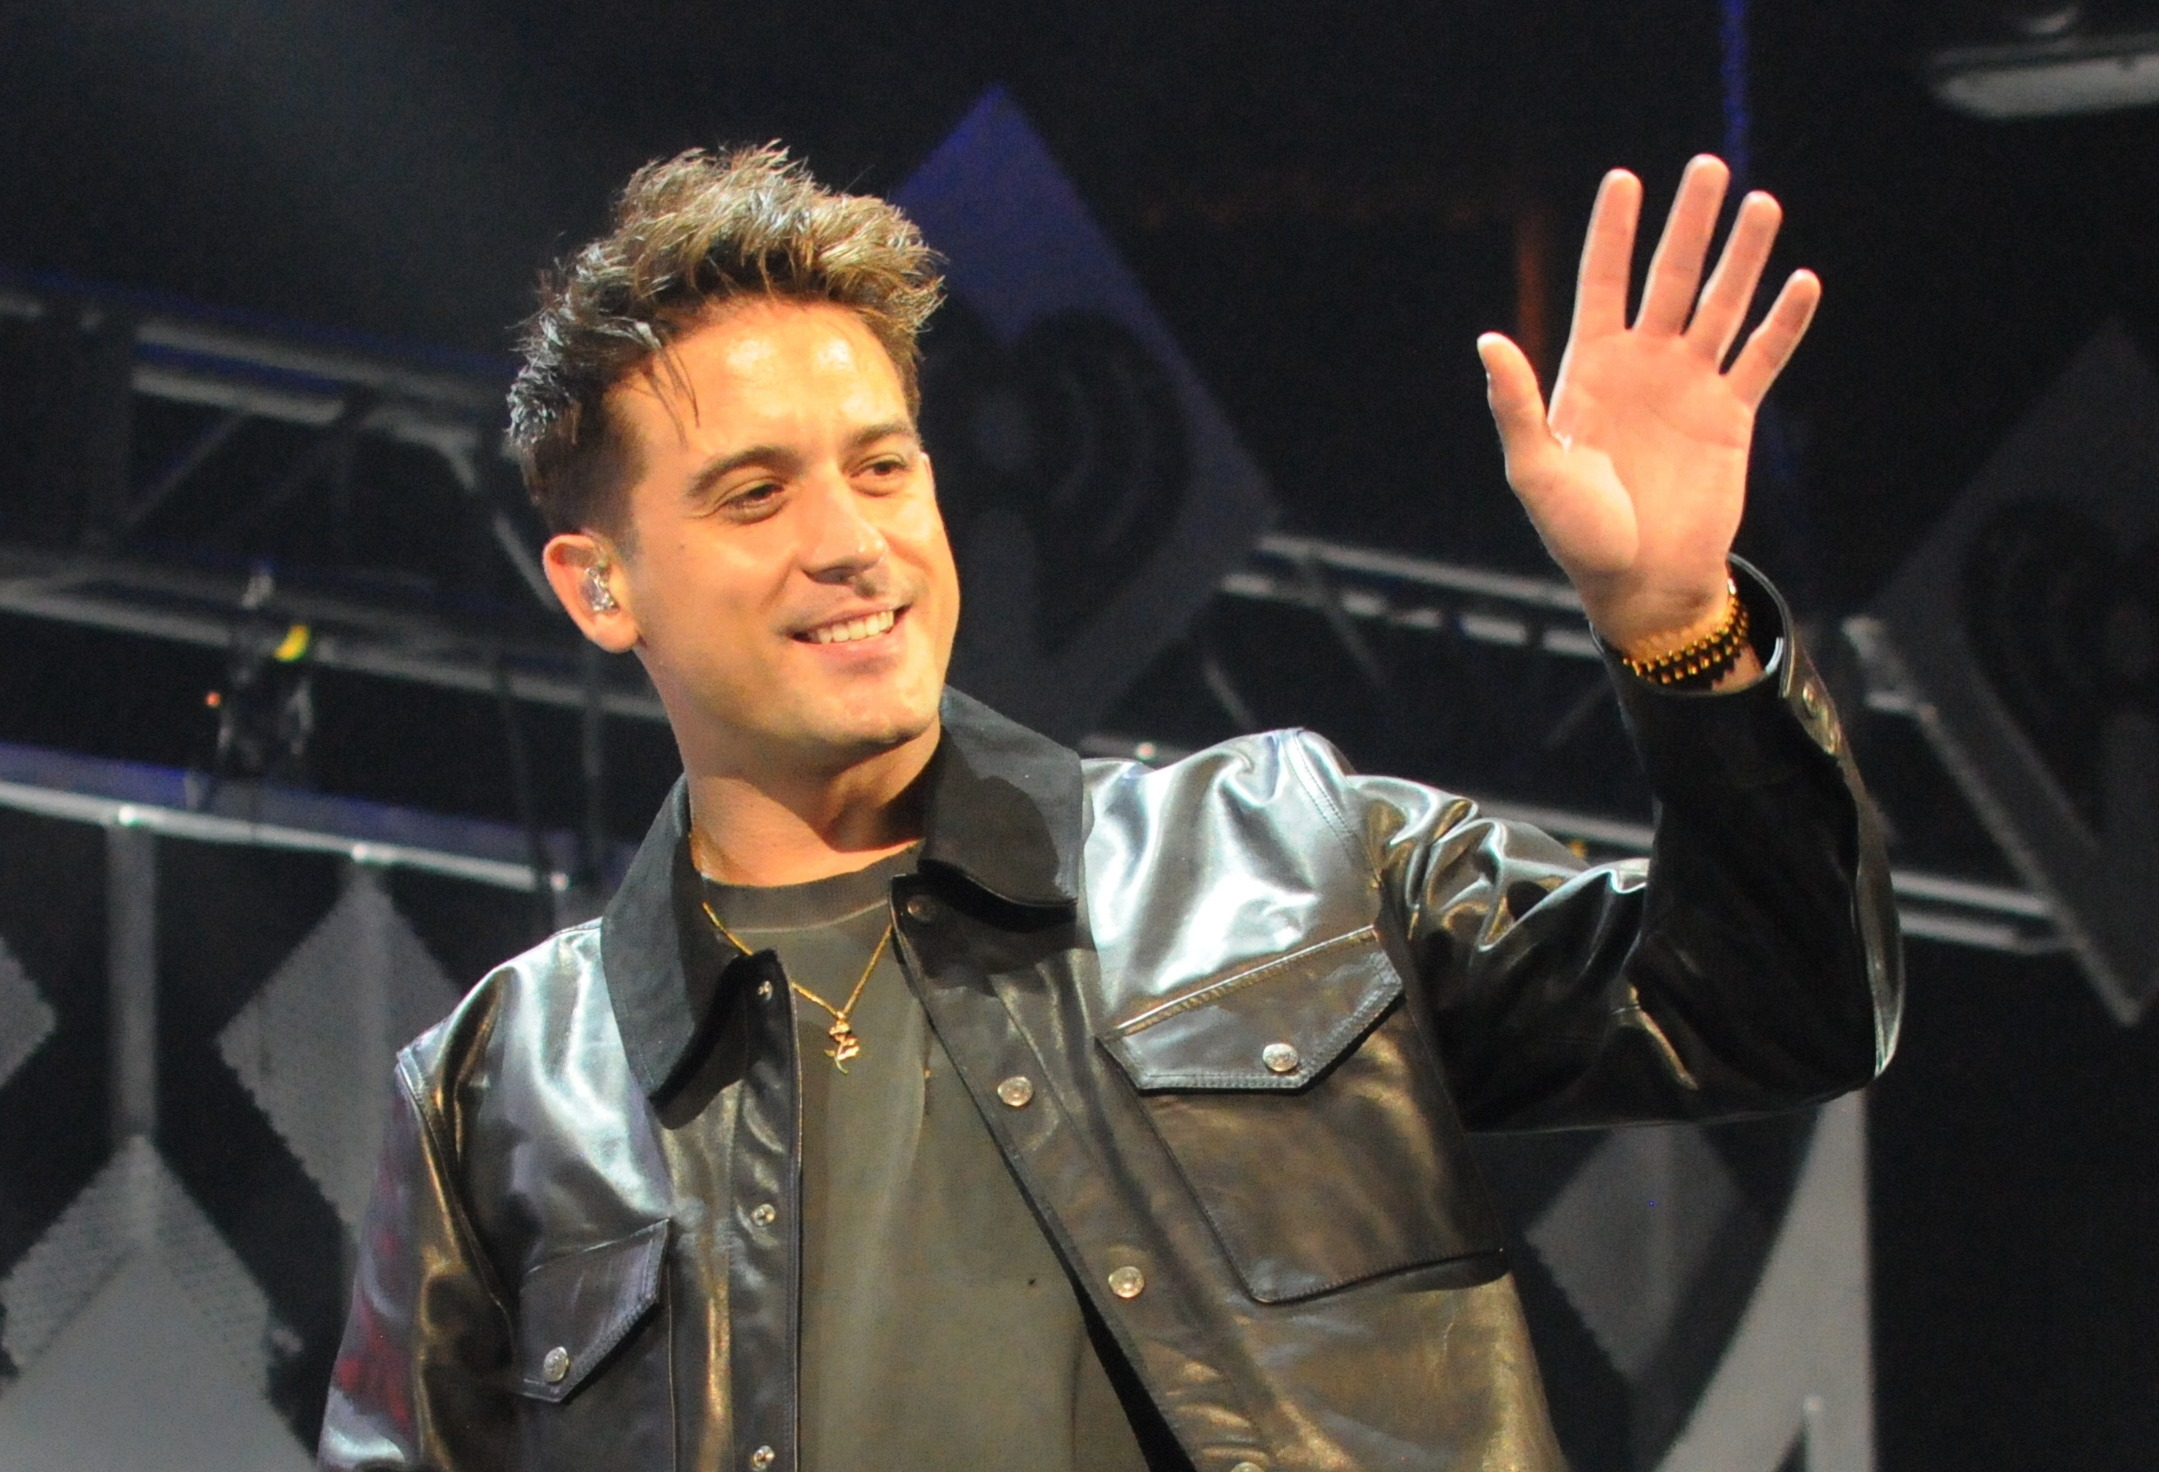 G-Eazy Says His Own Arrest In Sweden Is Proof The Justice System Is Racist